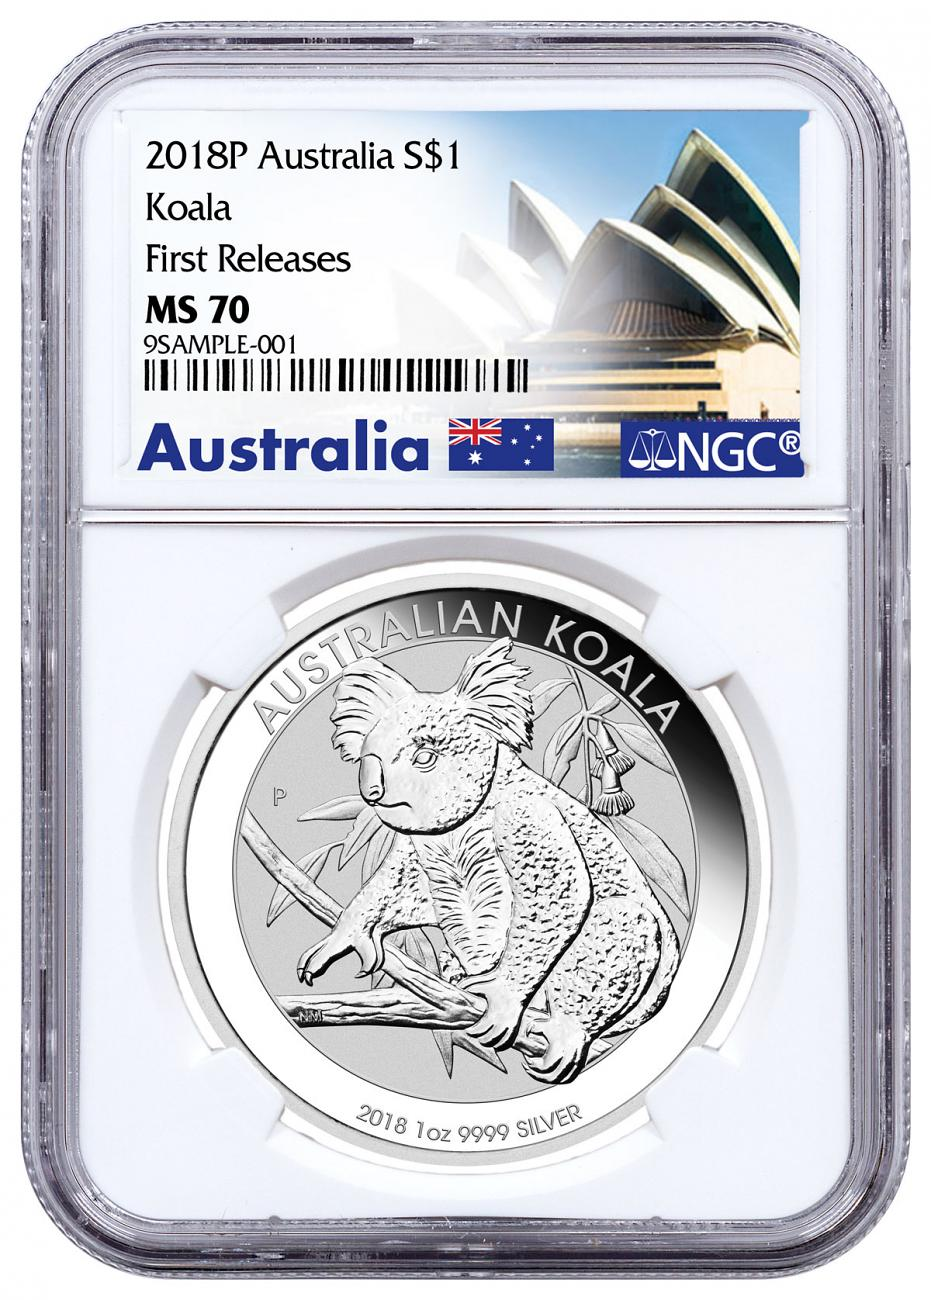 2018-P Australia 1 oz Silver Koala $1 Coin NGC MS70 FR Exclusive Australia Label